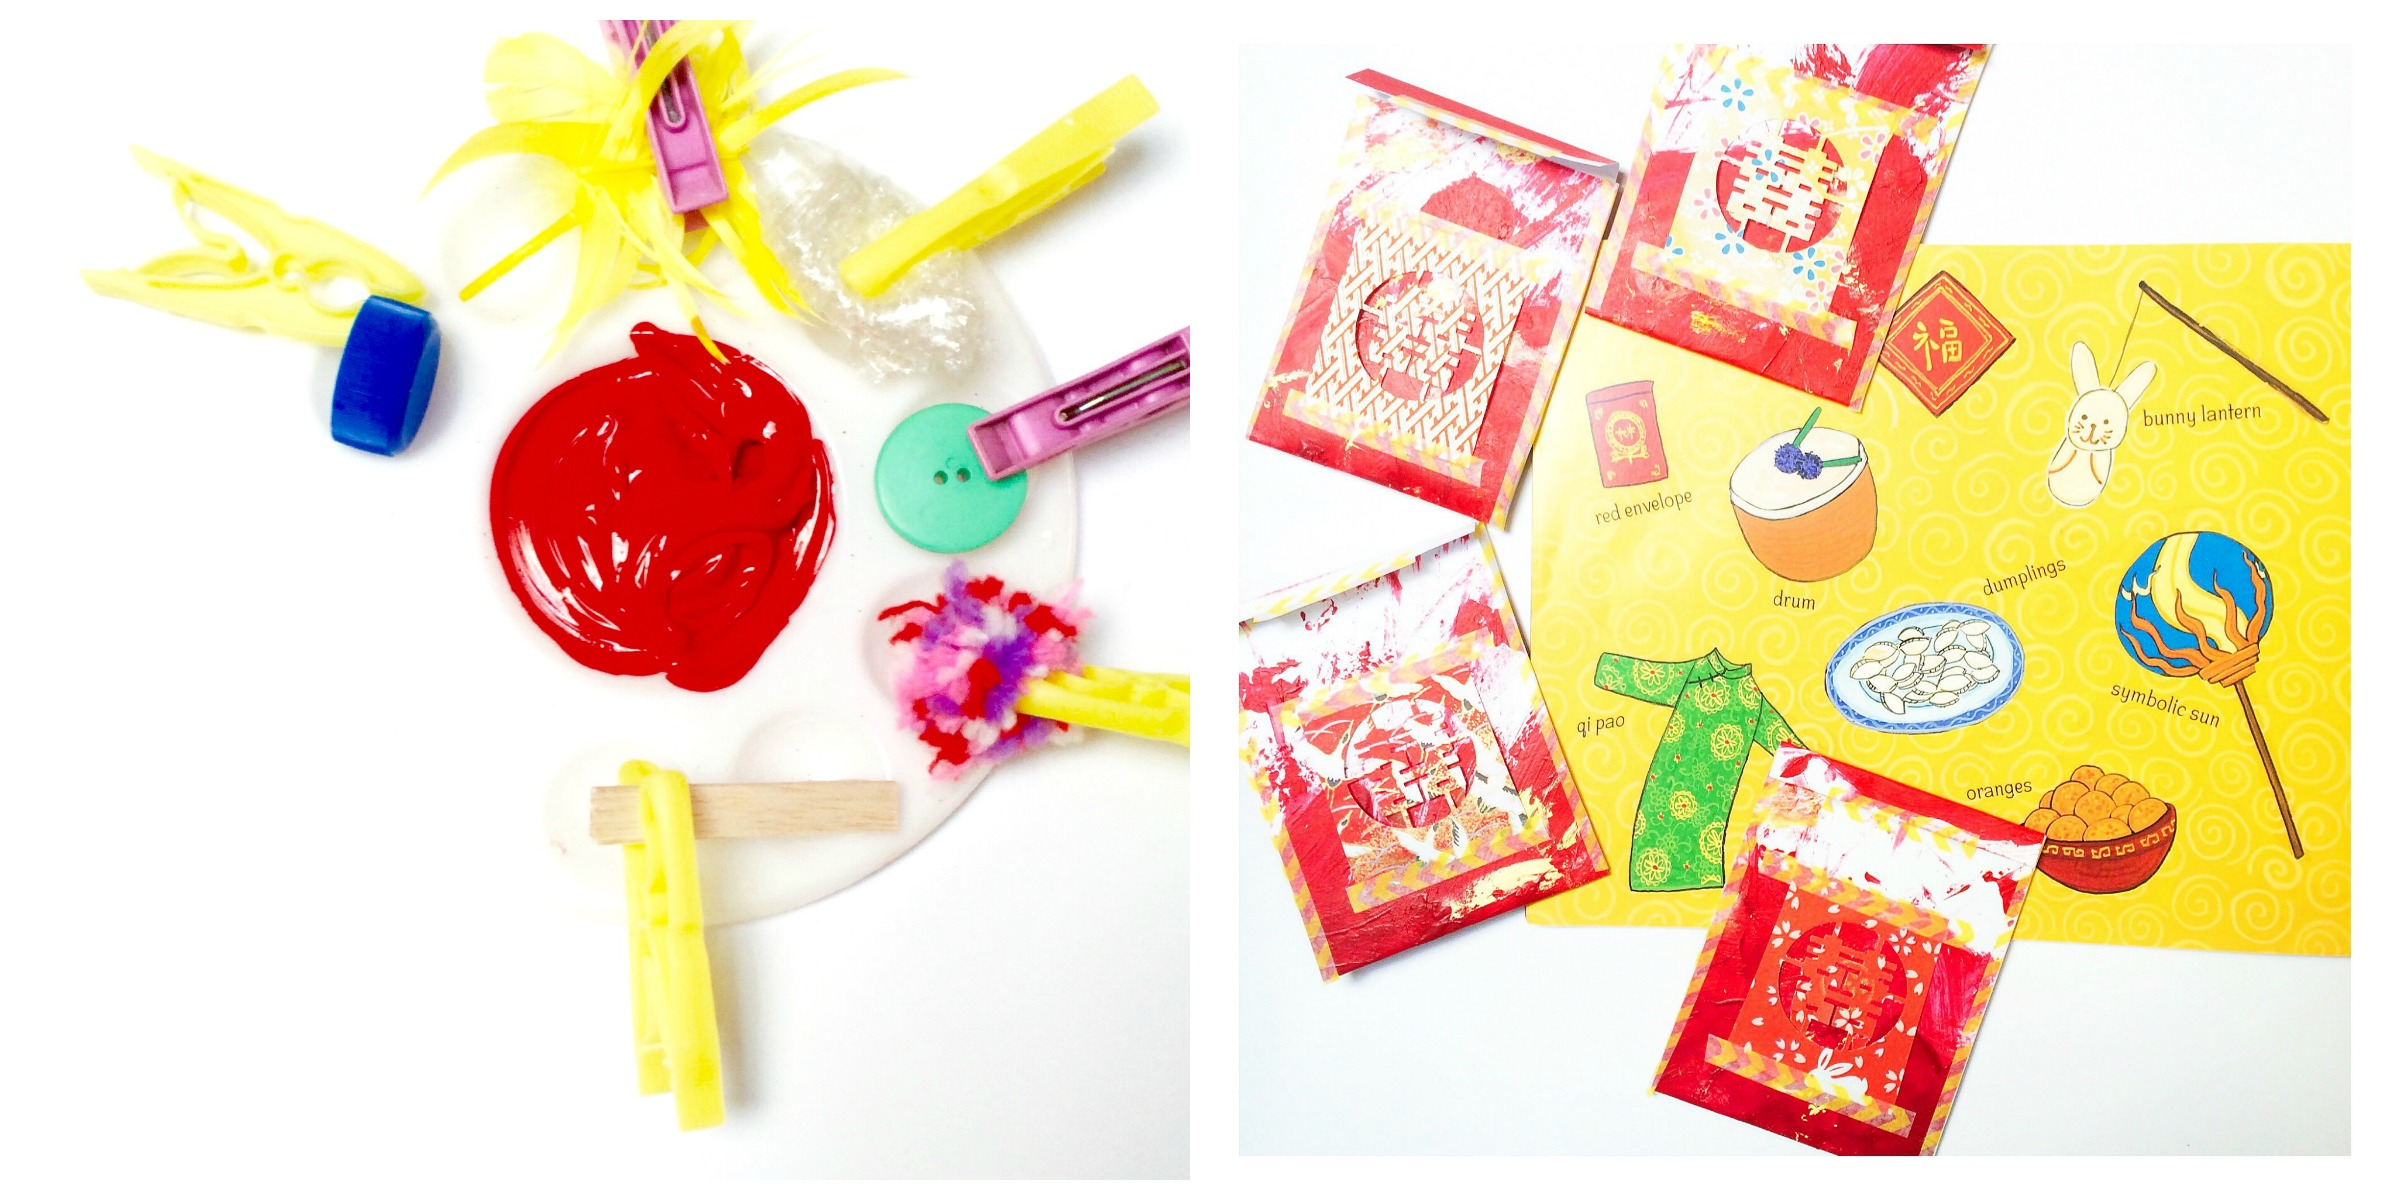 Lunar new year crafts - Lunar New Year Crafts Www Ohcreativeday Com